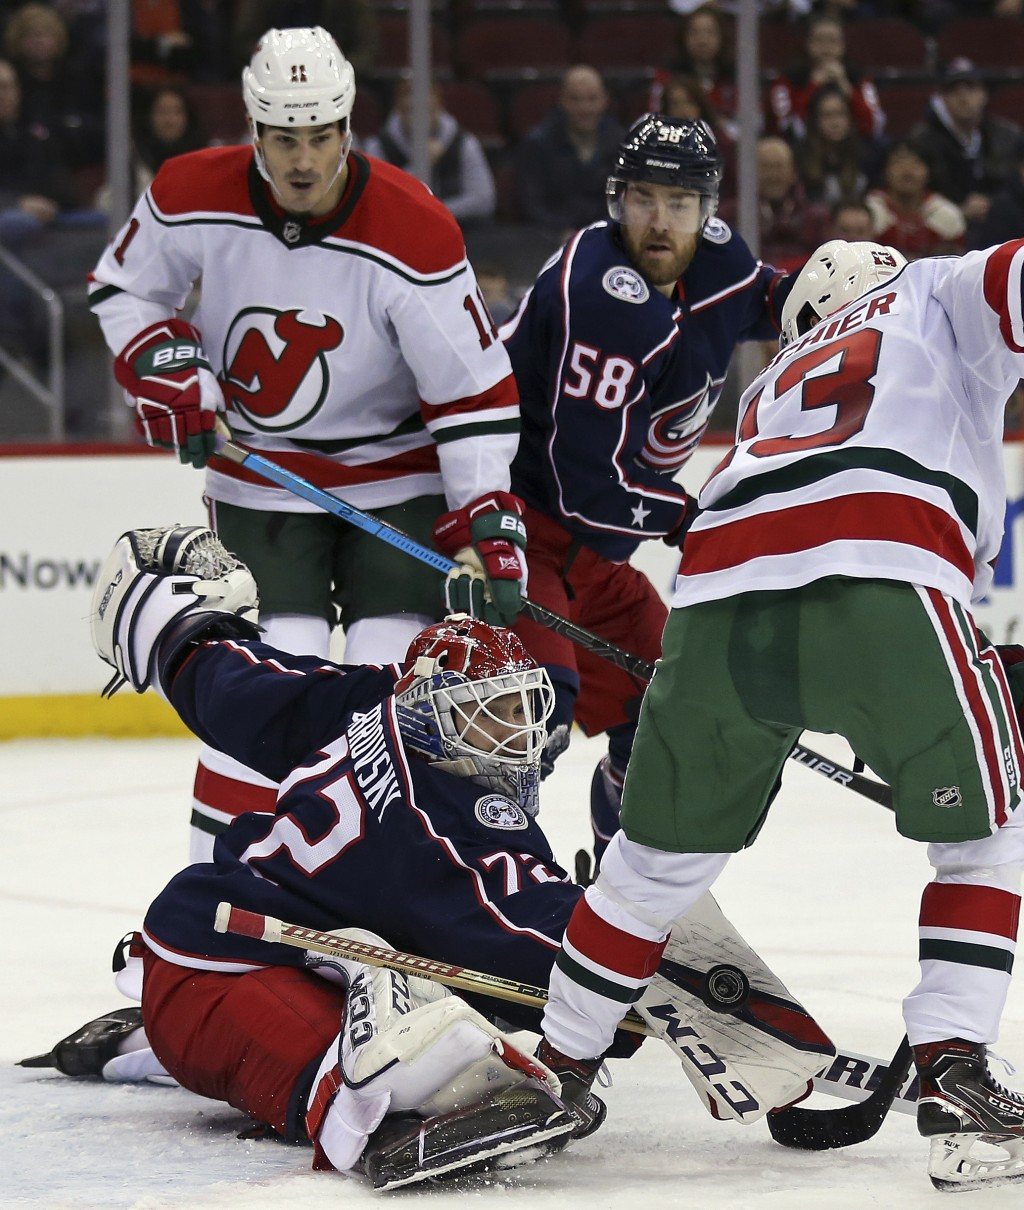 Columbus Blue Jackets goaltender Sergei Bobrovsky (72) makes a pad save on a shot by New Jersey Devils center Nico Hischier (13) during the second per